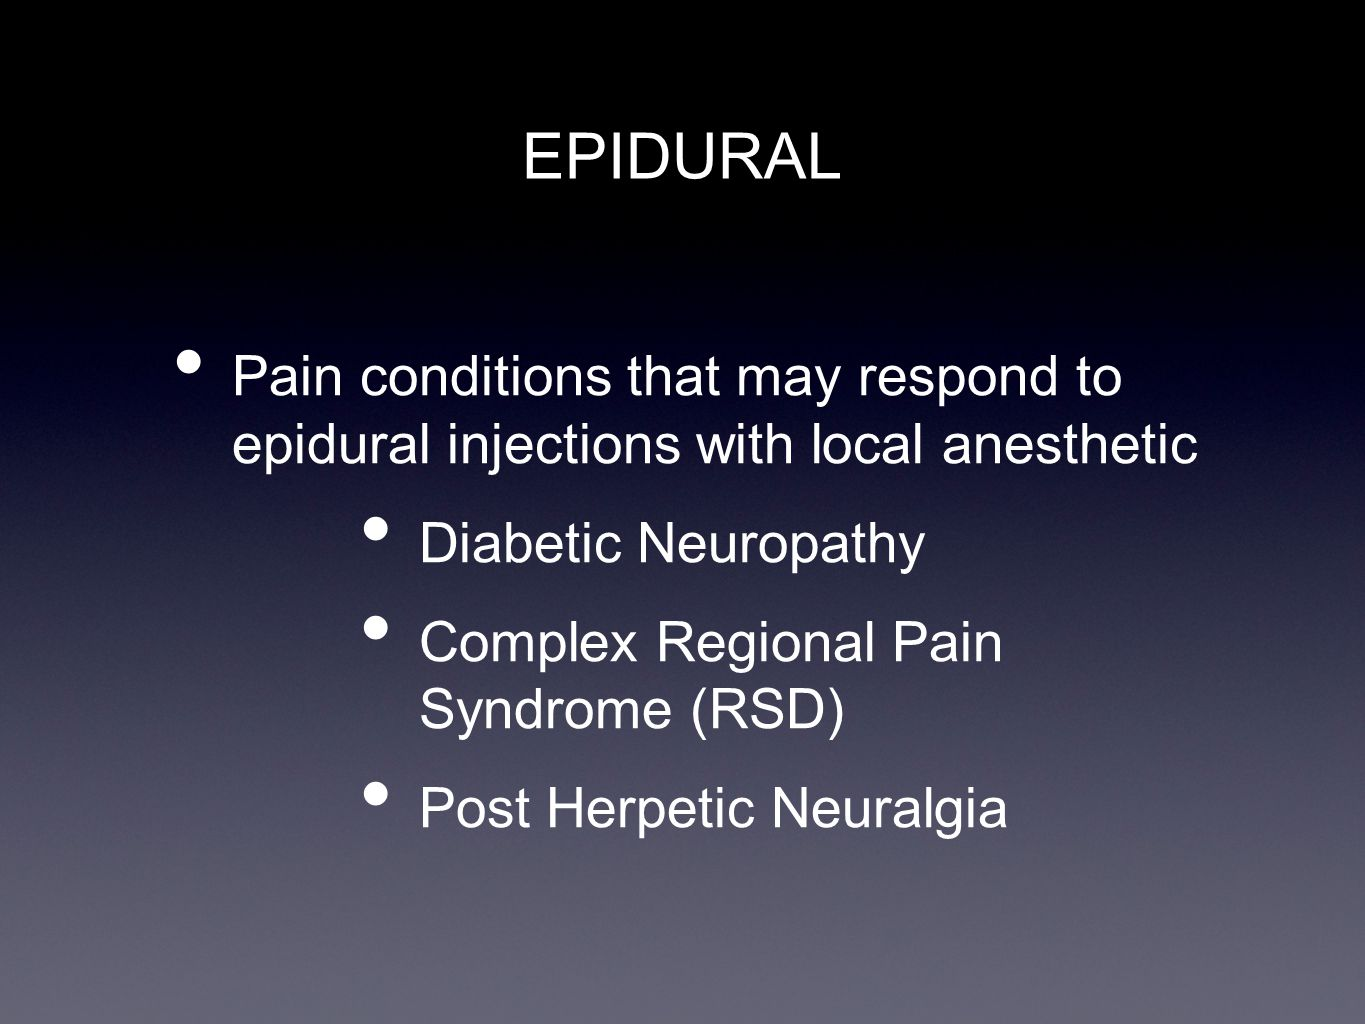 EPIDURAL Pain conditions that may respond to epidural injections with local anesthetic. Diabetic Neuropathy.